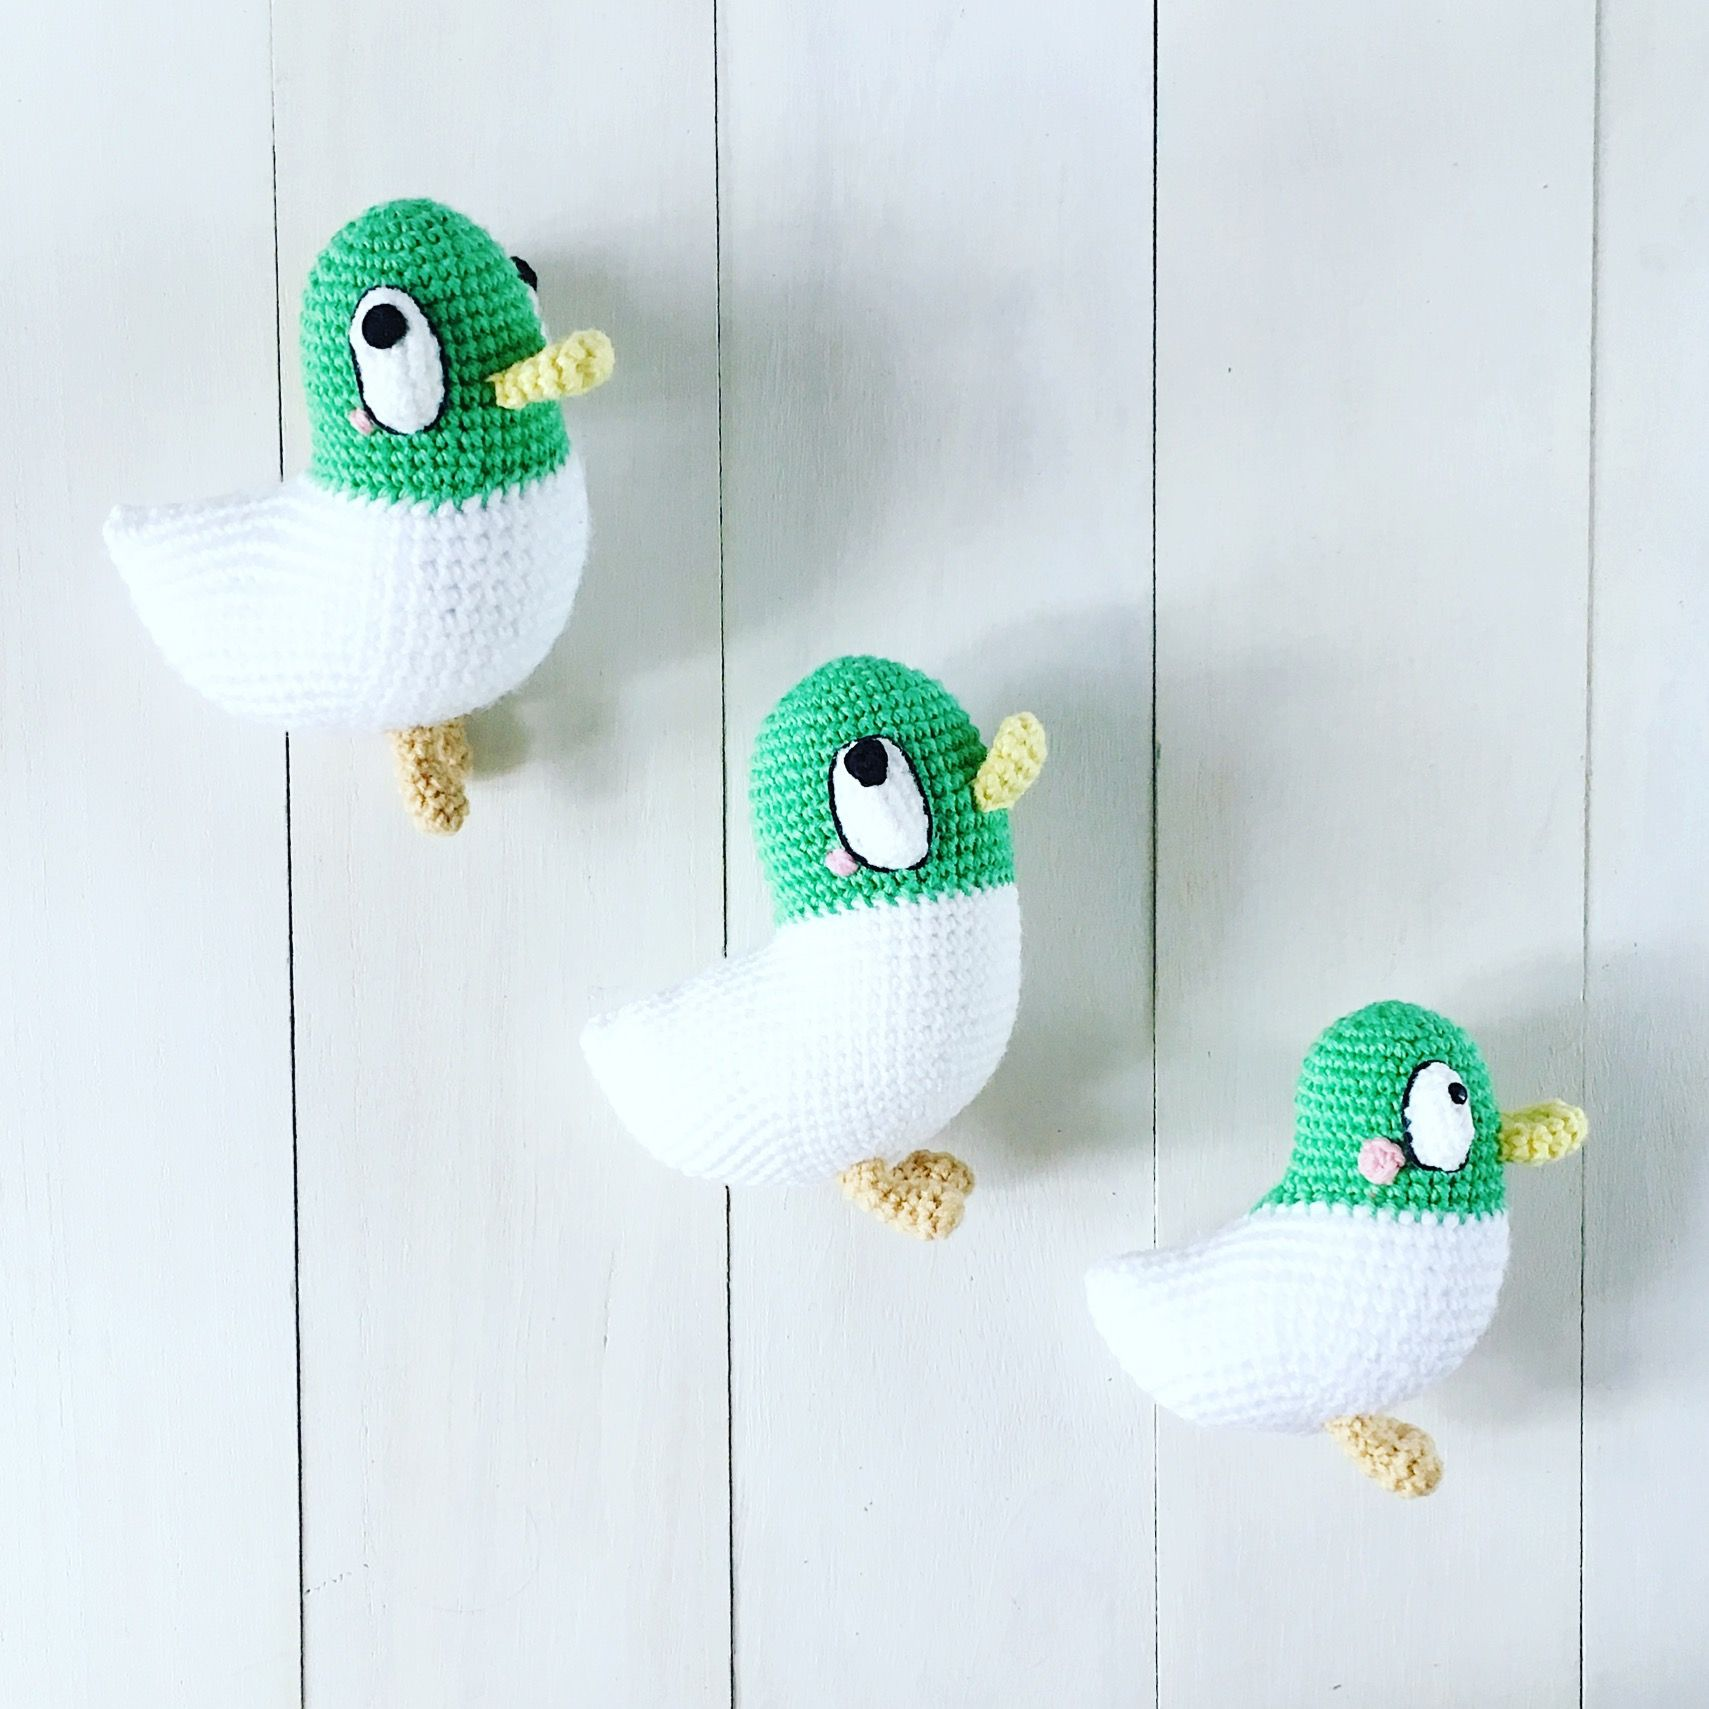 Sarah and Duck, quack! Sarah and Duck, quack! Sarah and Duck, quack ...